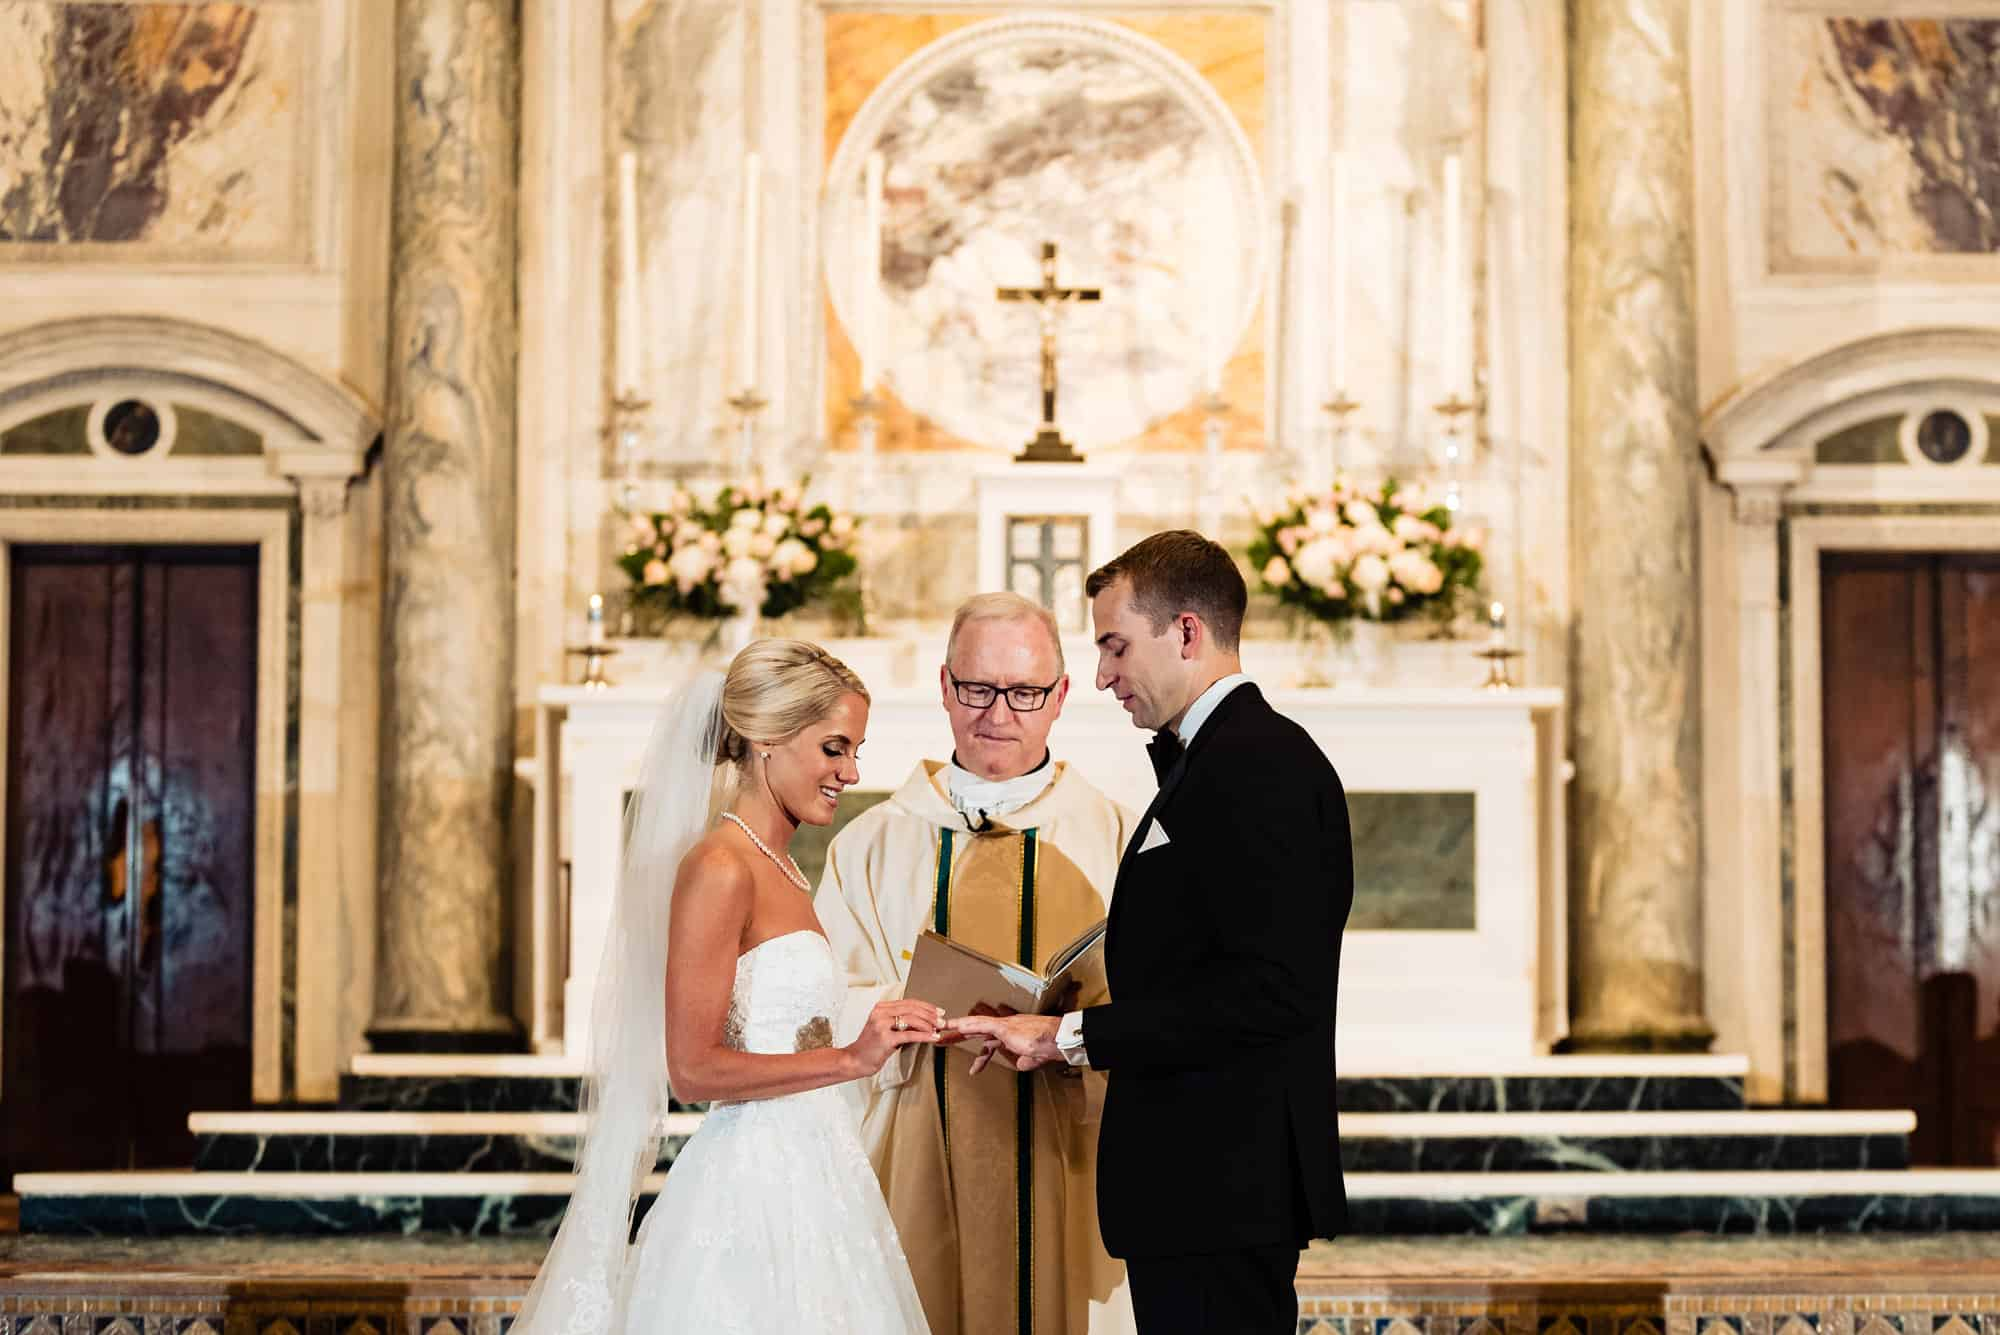 St. Patricks Church|bride putting ring on grooms finger